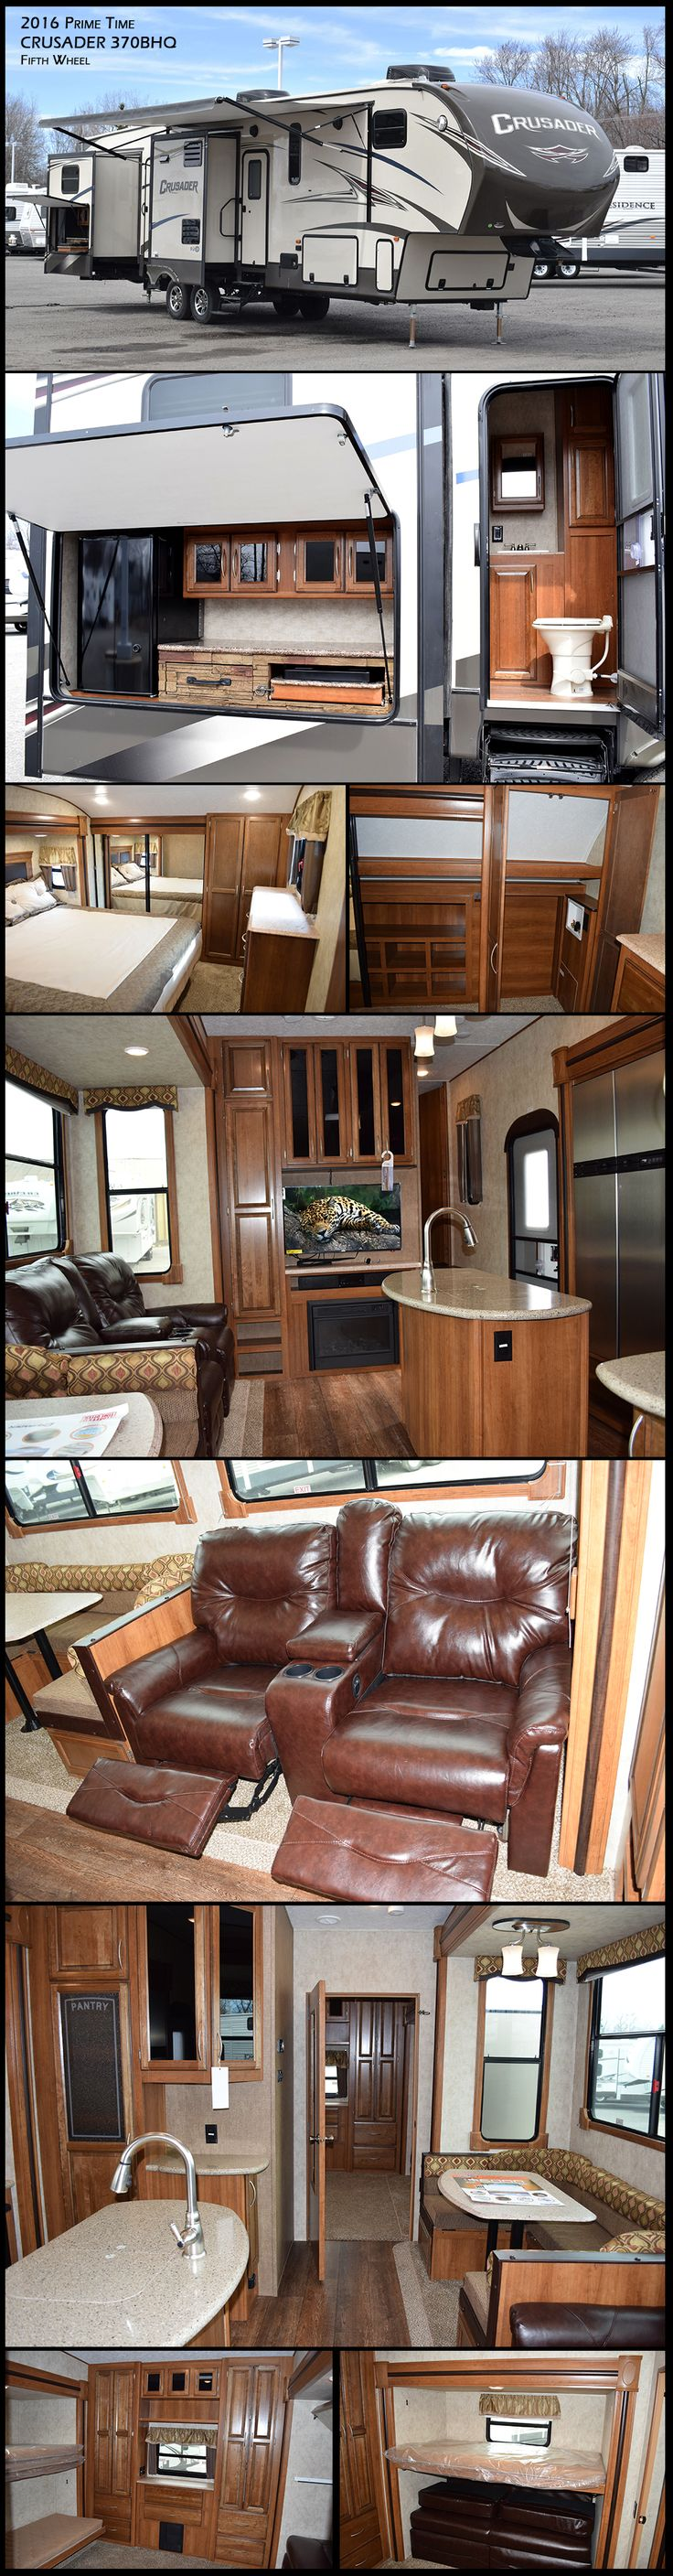 You will find plenty of space in the 2016 CRUSADER 370BHQ Fifth Wheel by Prime Time Manufacturing, featuring a rear bunk house that is ideal for your kids, featuring a sleep & play with a bunk above and a set of bunks on the opposite wall. Directly off of the bunk house there is a convenient half bath with its own door that leads directly to the outside. Enjoy cooking outdoor with the kitchen which has a two burner range and refrigerator.